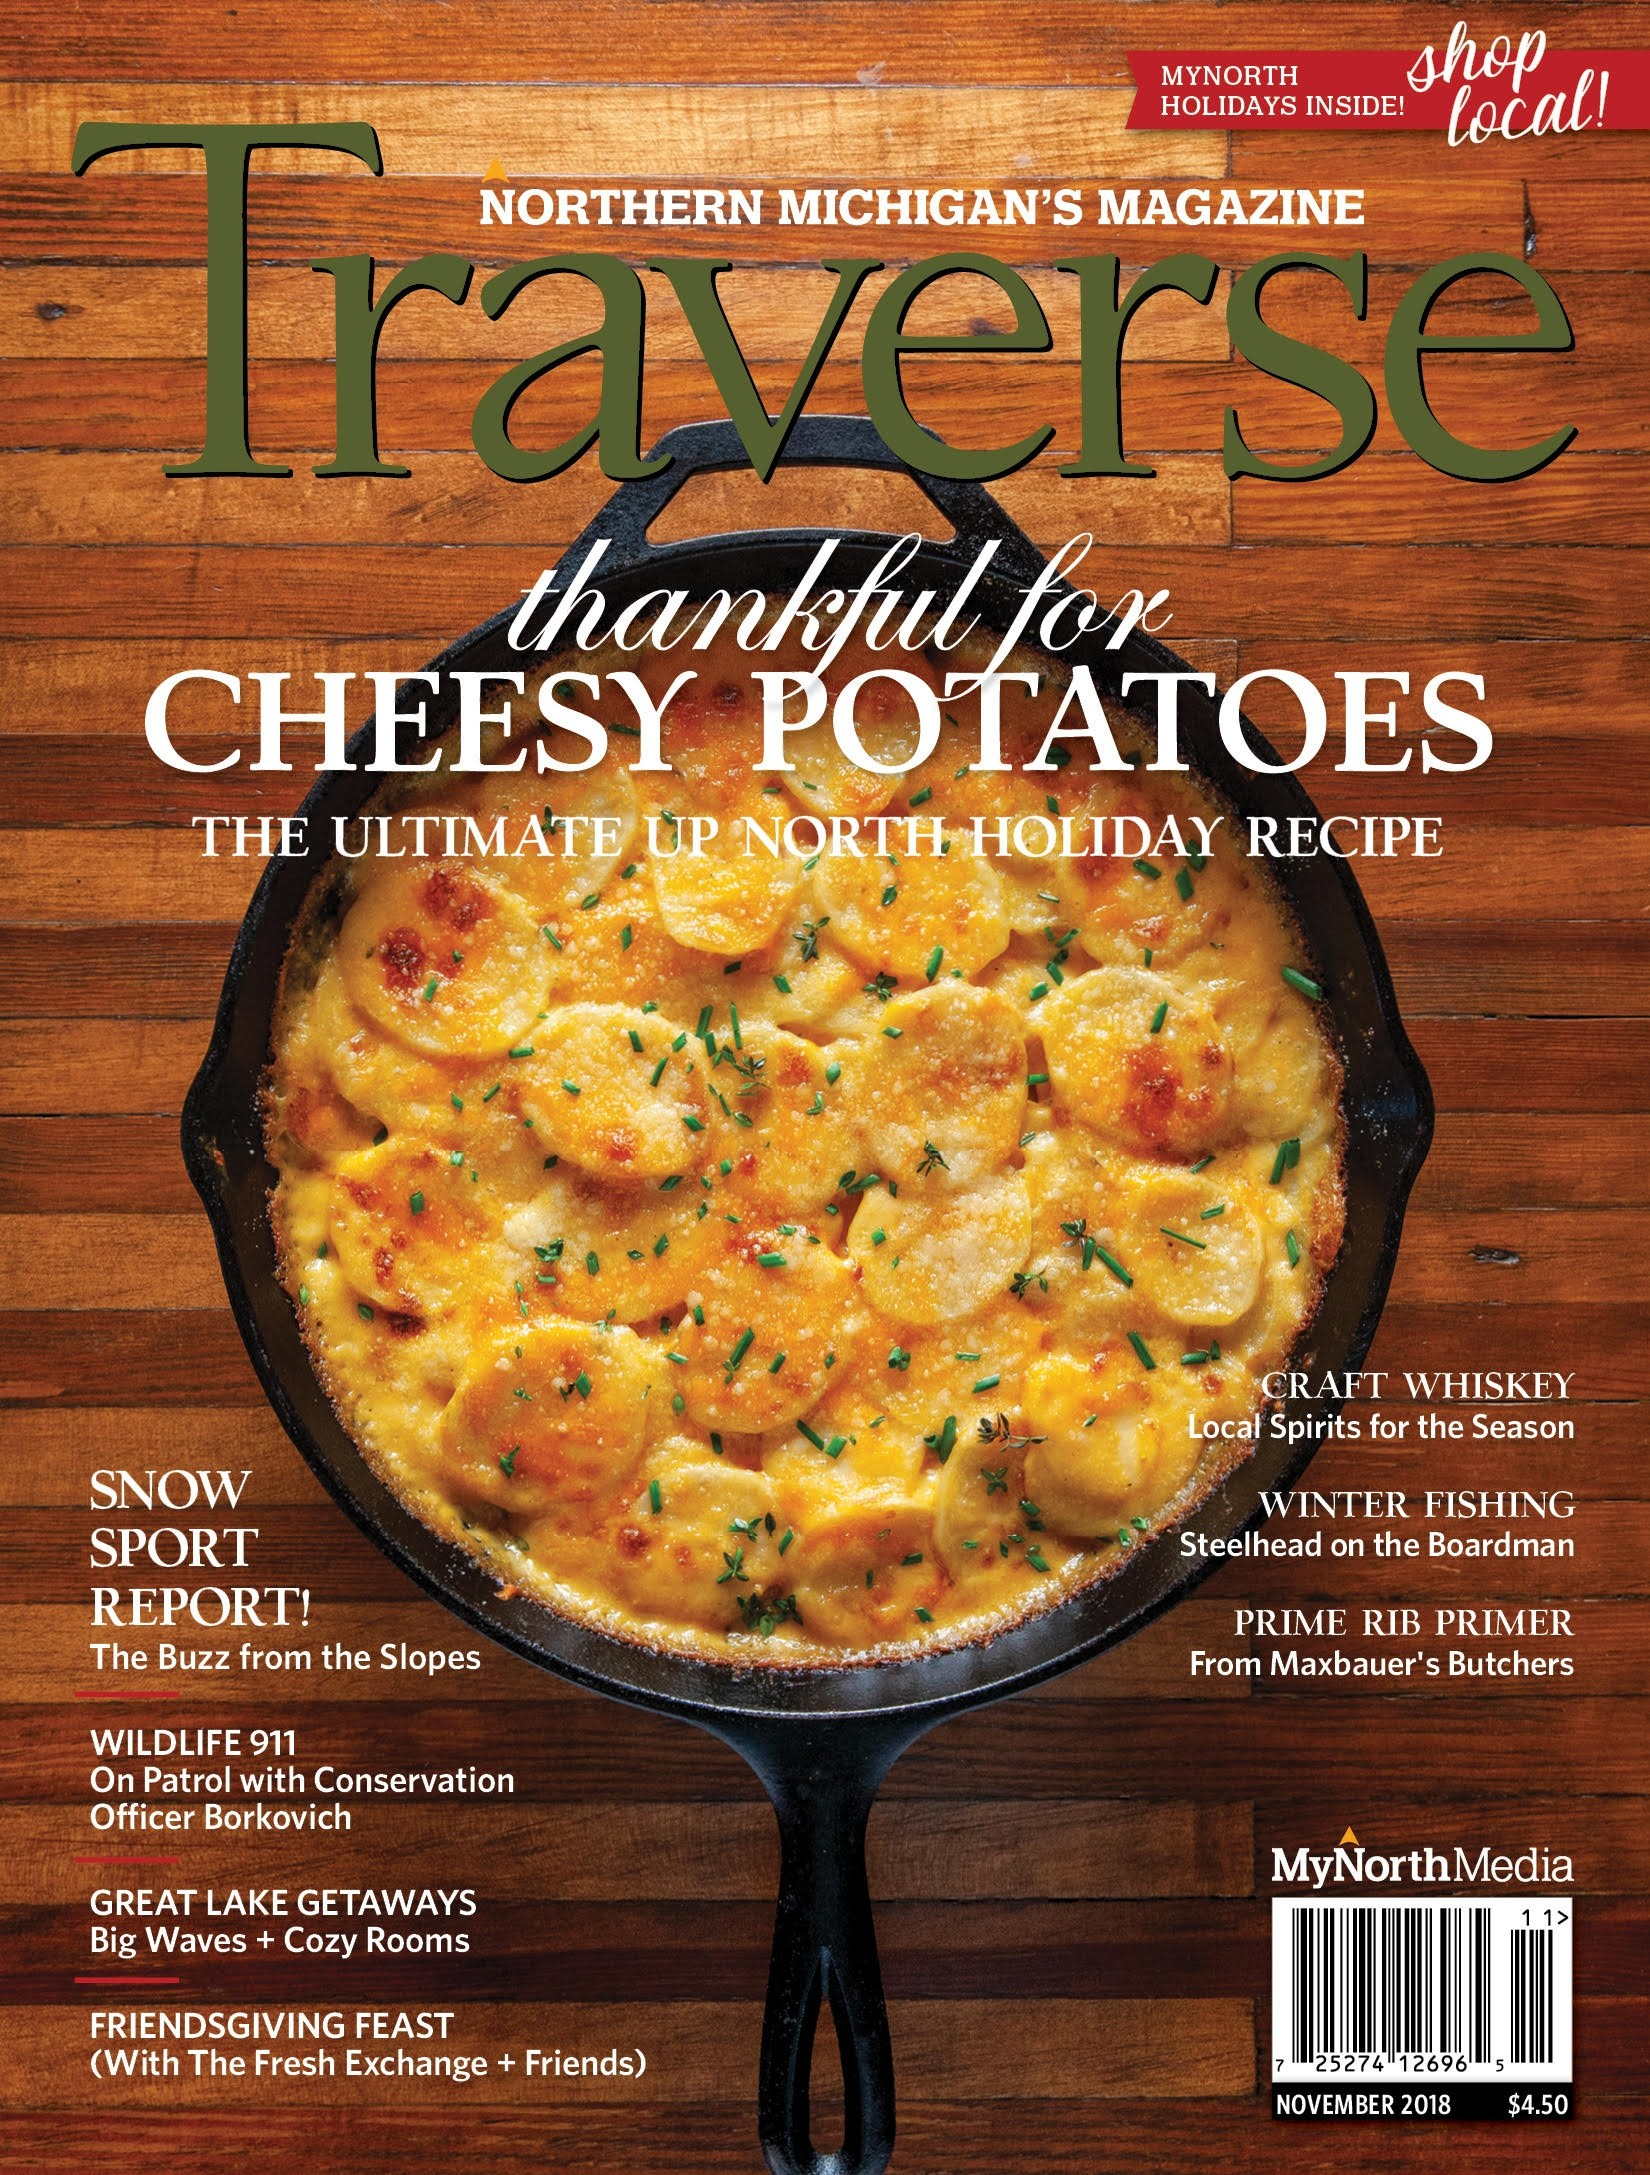 November 2018 Traverse, Northern Michigan's Magazine